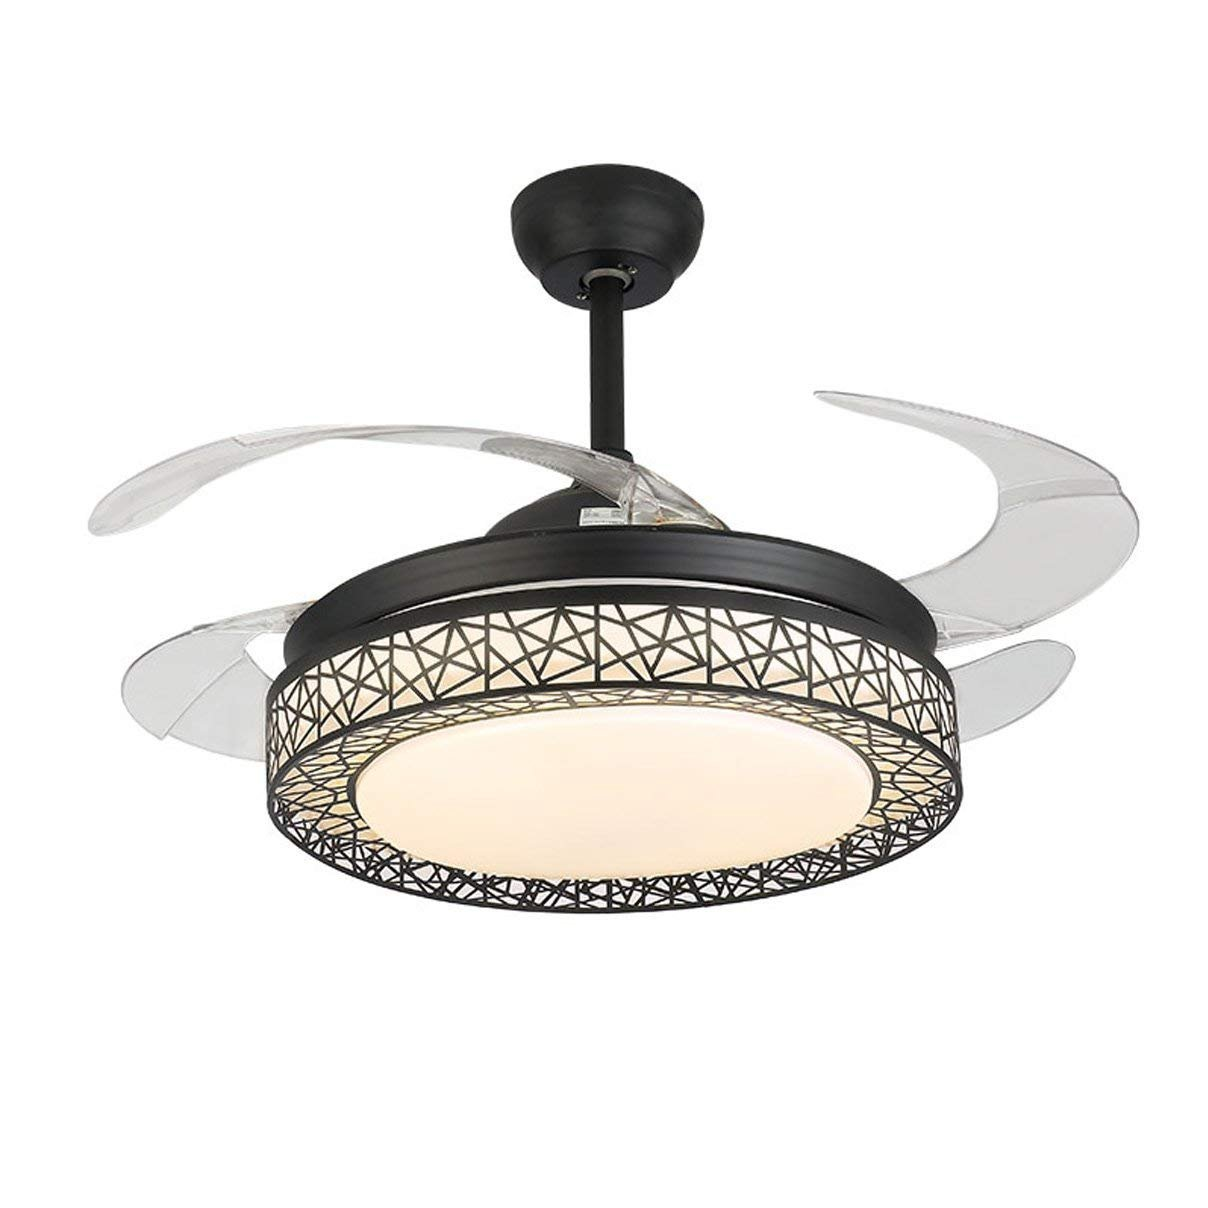 Fandian 42Inch Ceiling Fans with Light 4 Retractable Blades LED Ceiling Fan 3 Color Change 3 Speeds Chandelier with Remote Control (Black)